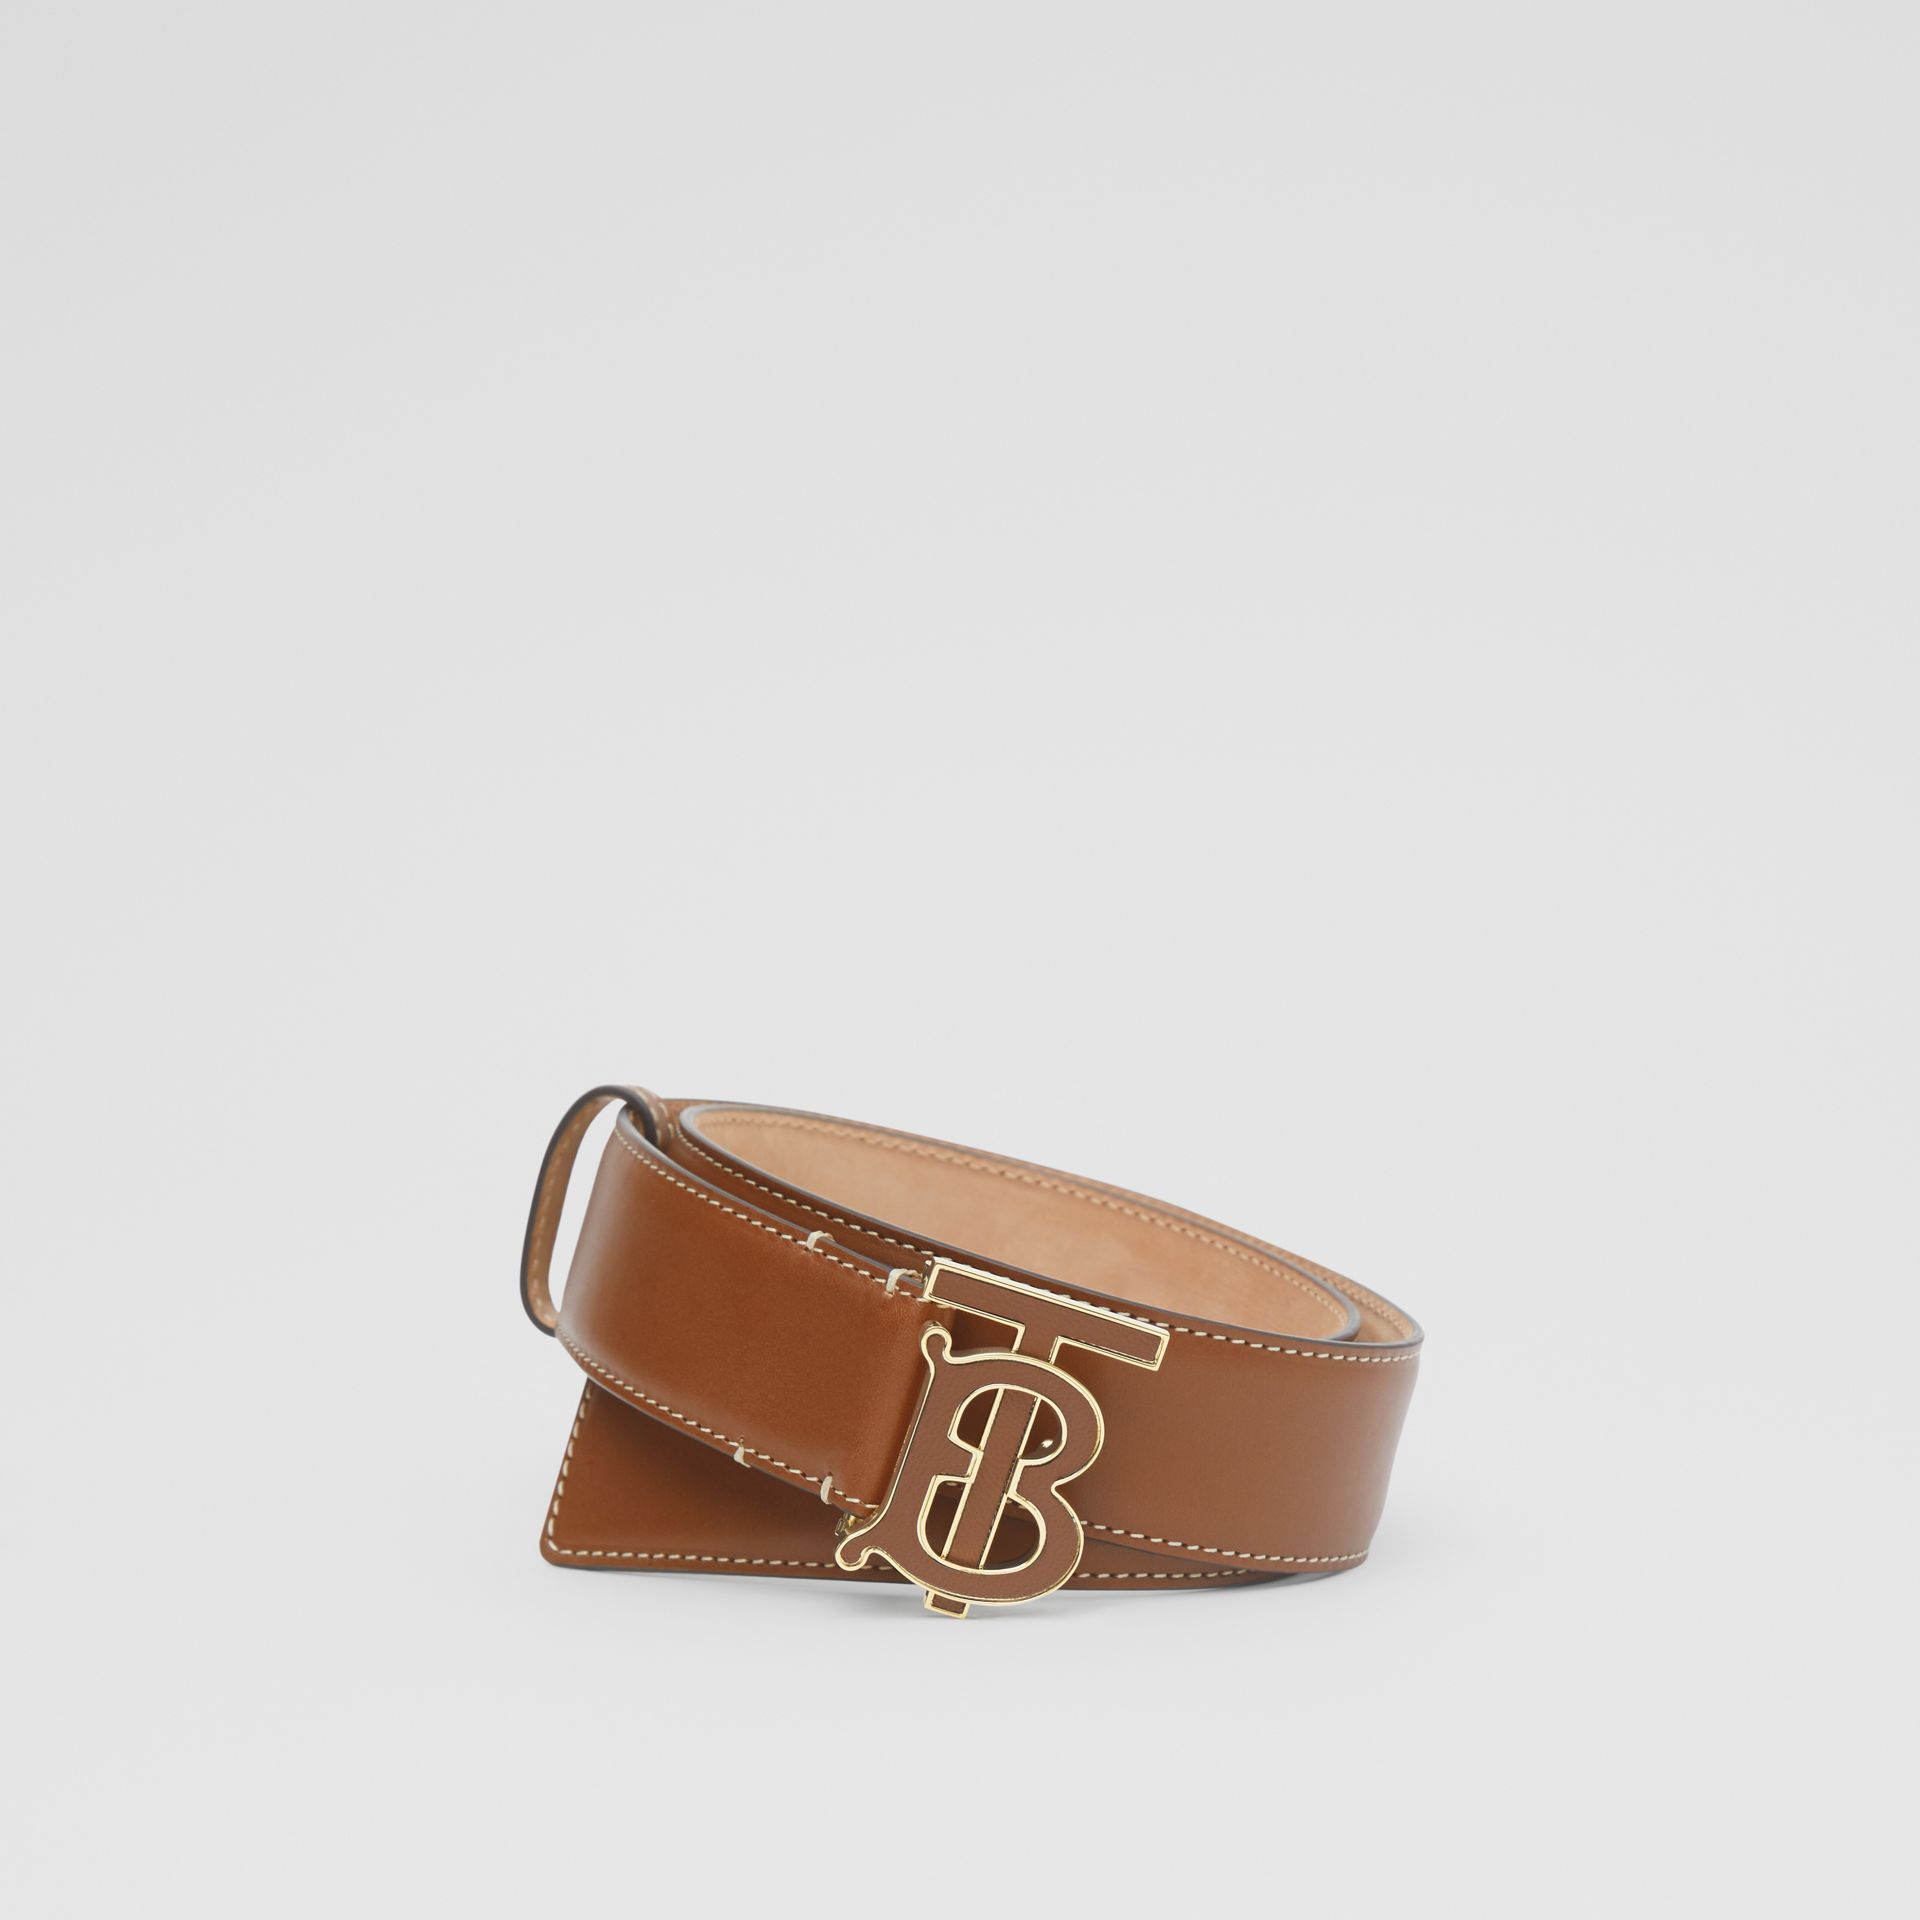 Monogram Motif Leather Belt in Tan - Women | Burberry Canada - gallery image 0